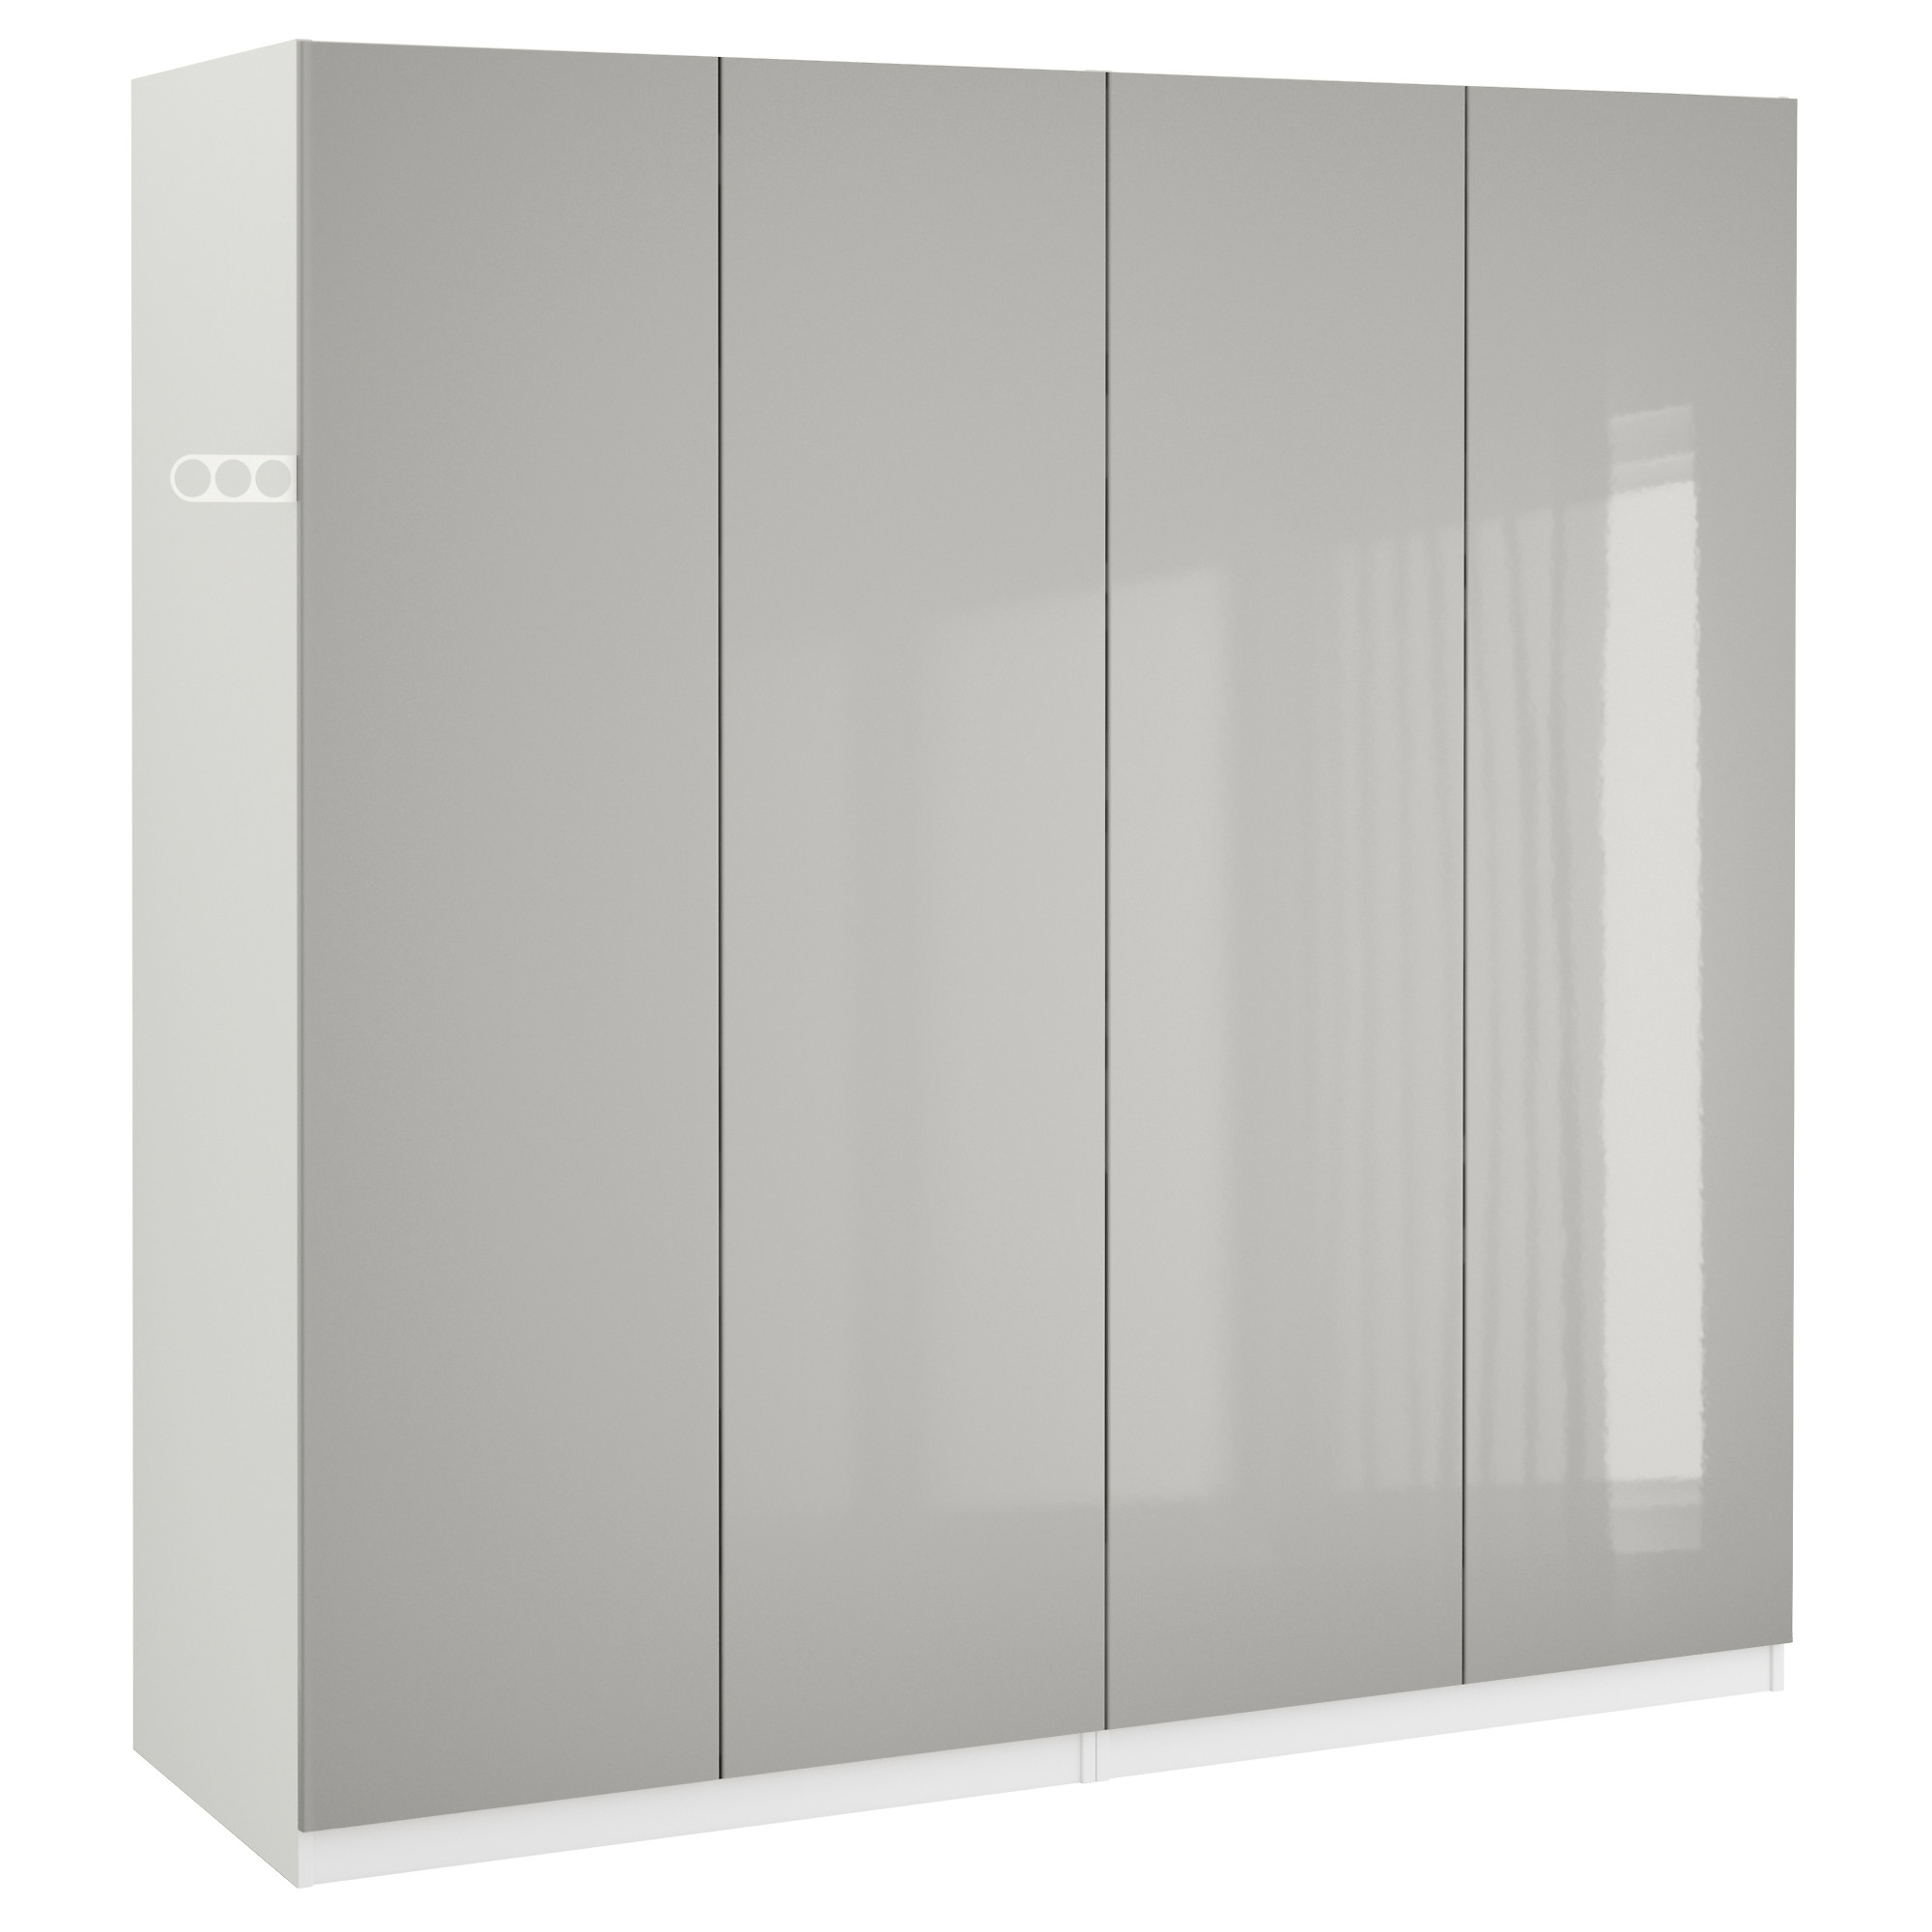 "Pax Wardrobe – 78 3/4x23 5/8x79 1/4 "" – Ikea Throughout Best And Newest White High Gloss Wardrobes (View 2 of 15)"